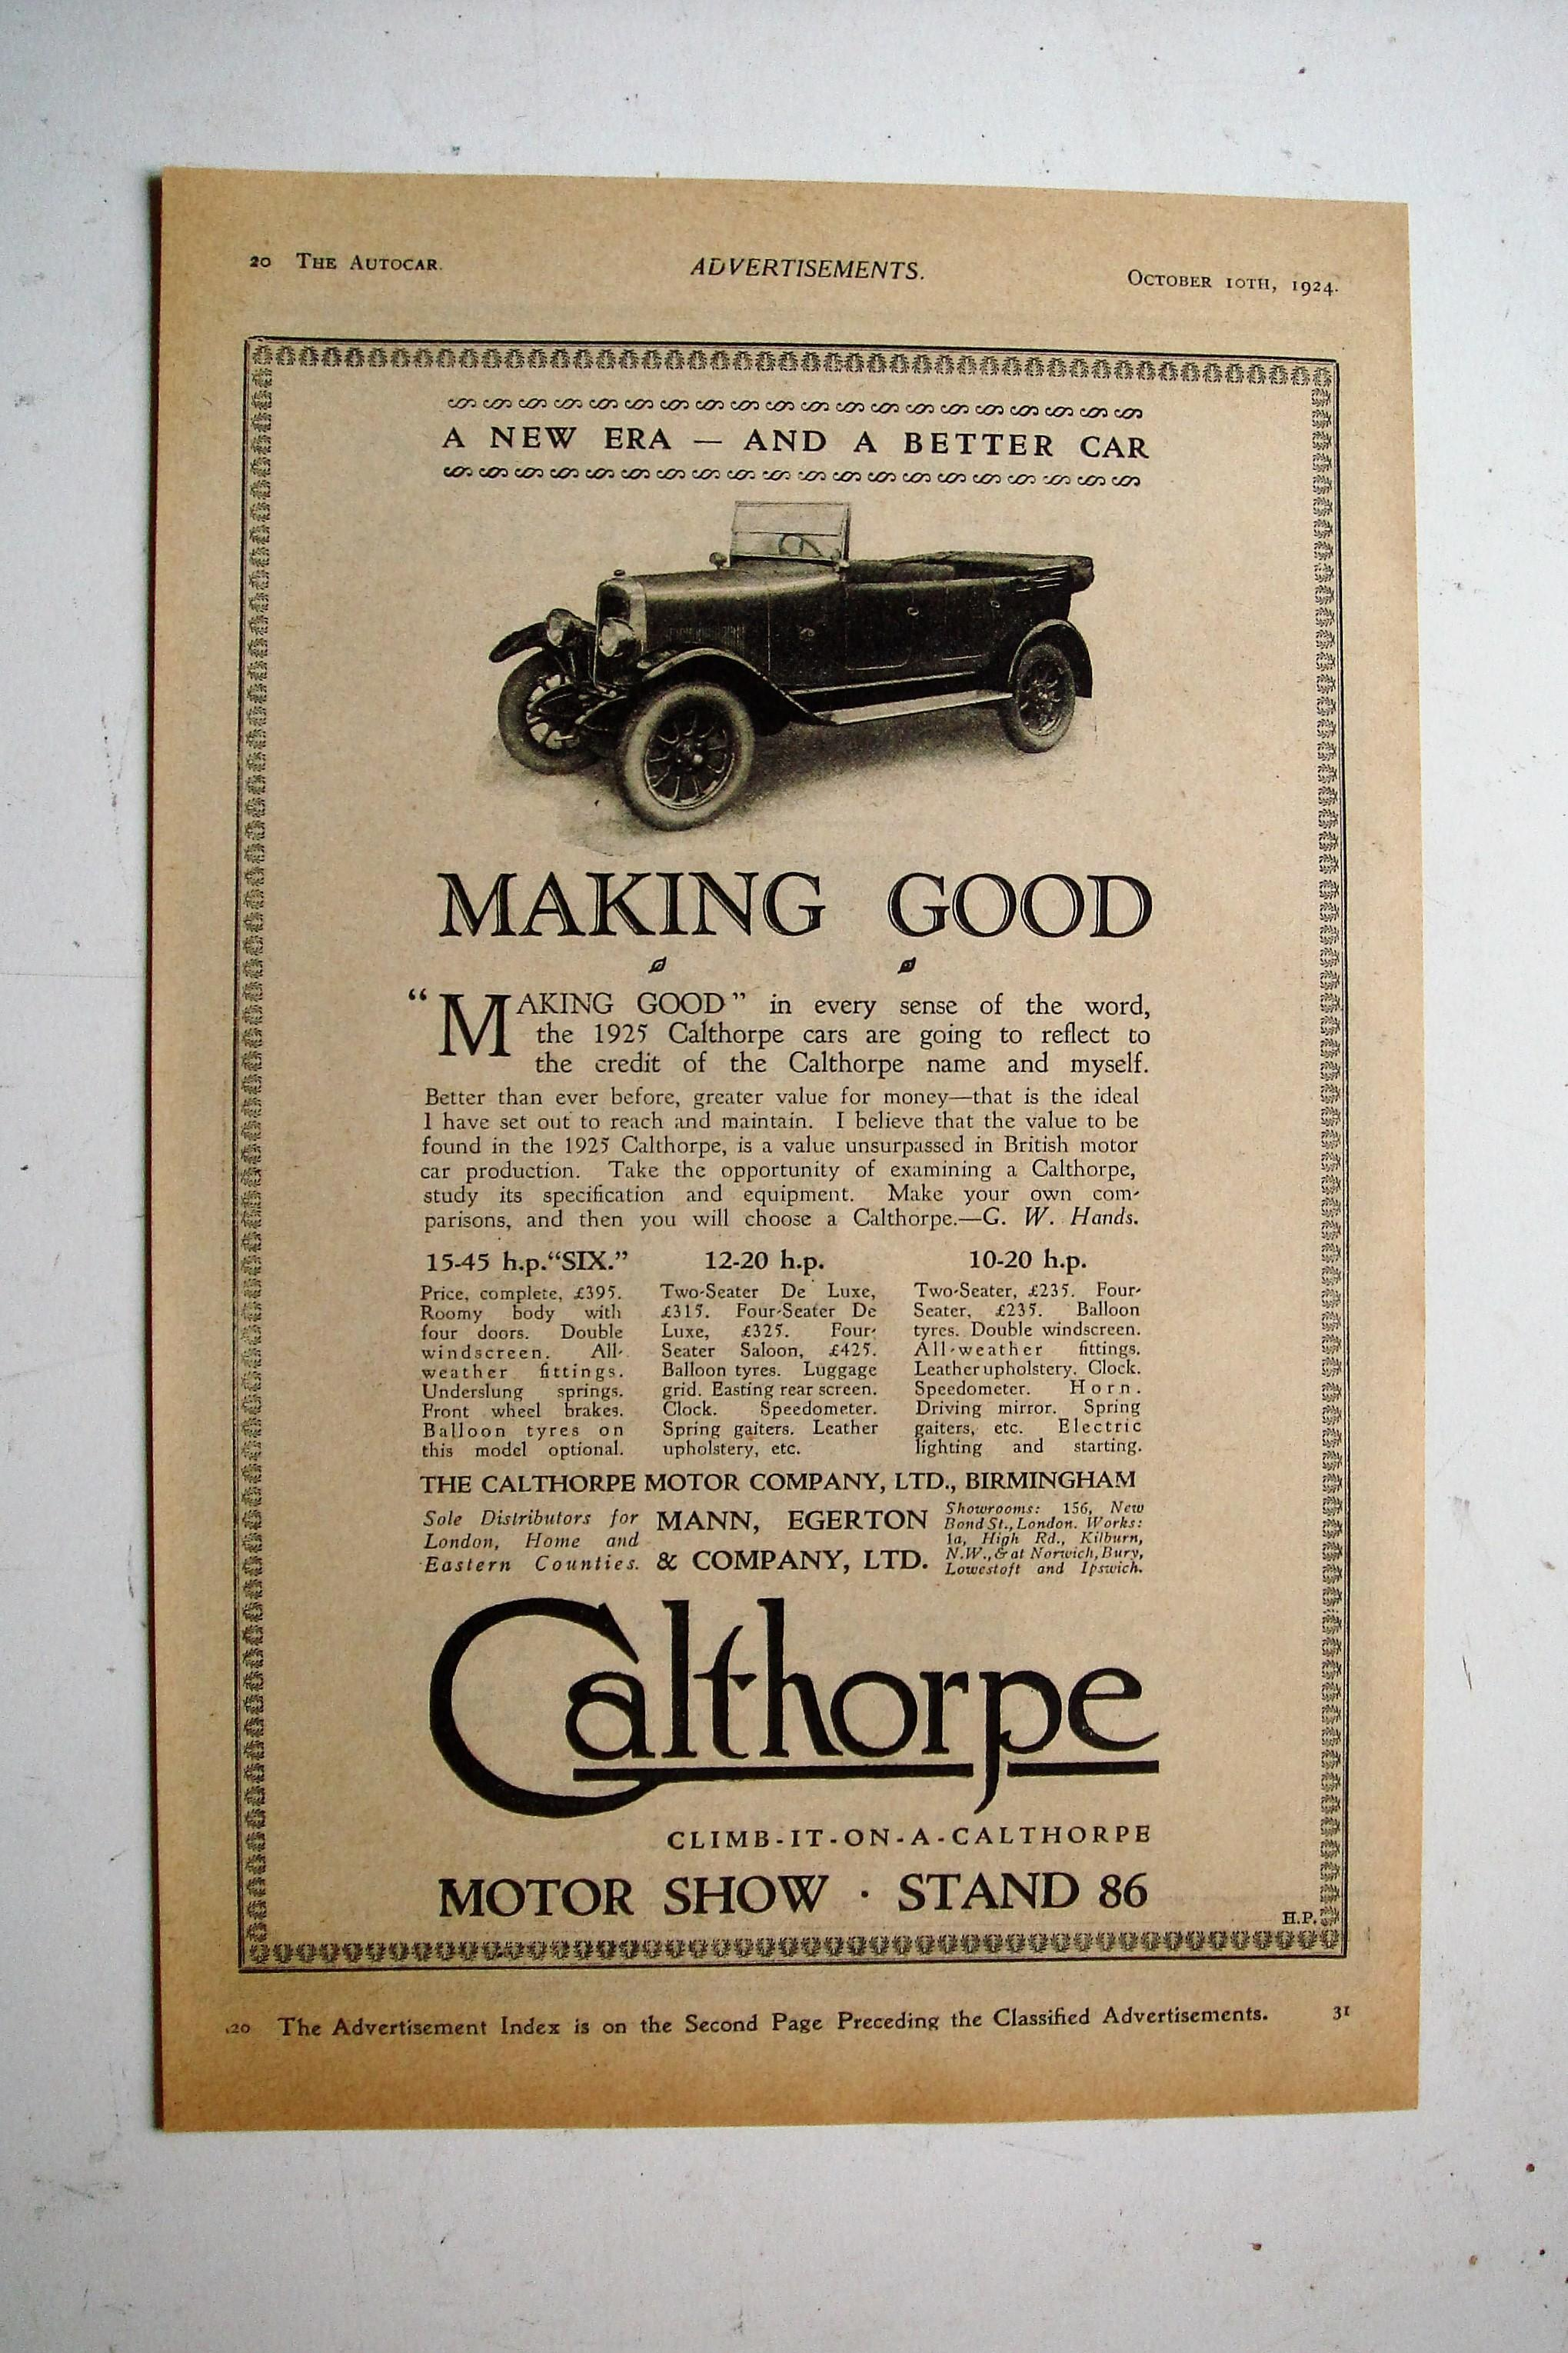 1924 Priced Advertisement for The 1925 Calthorpe Car Range